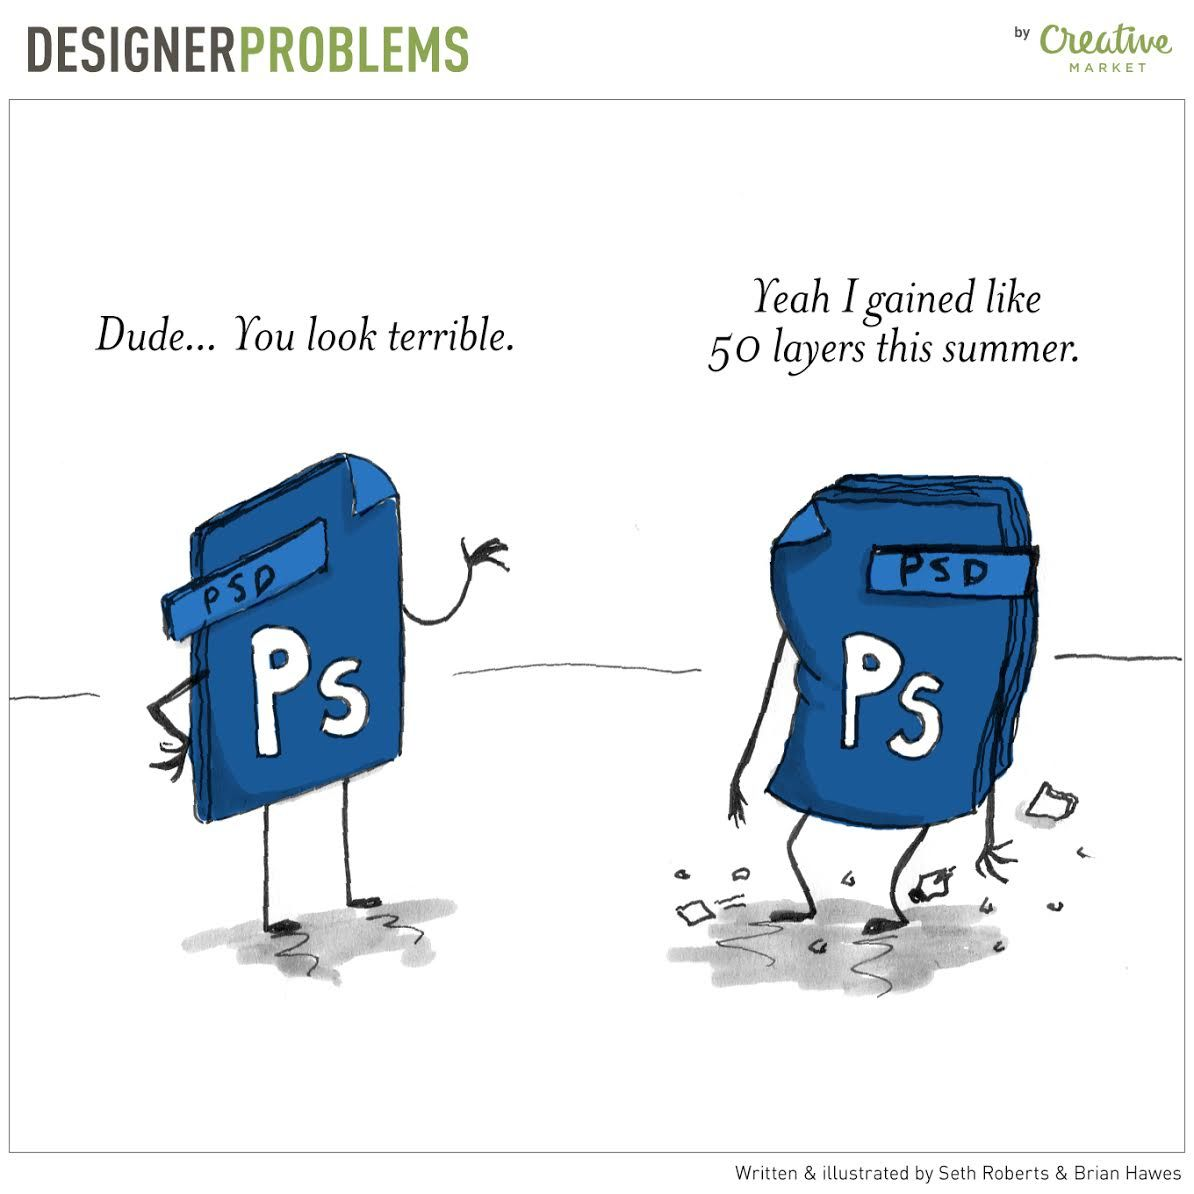 Every week we'll be poking fun at the all the best and worst parts of being a designer. Here's our growing collection of #DesignerProblems, we hope you enjoy it!